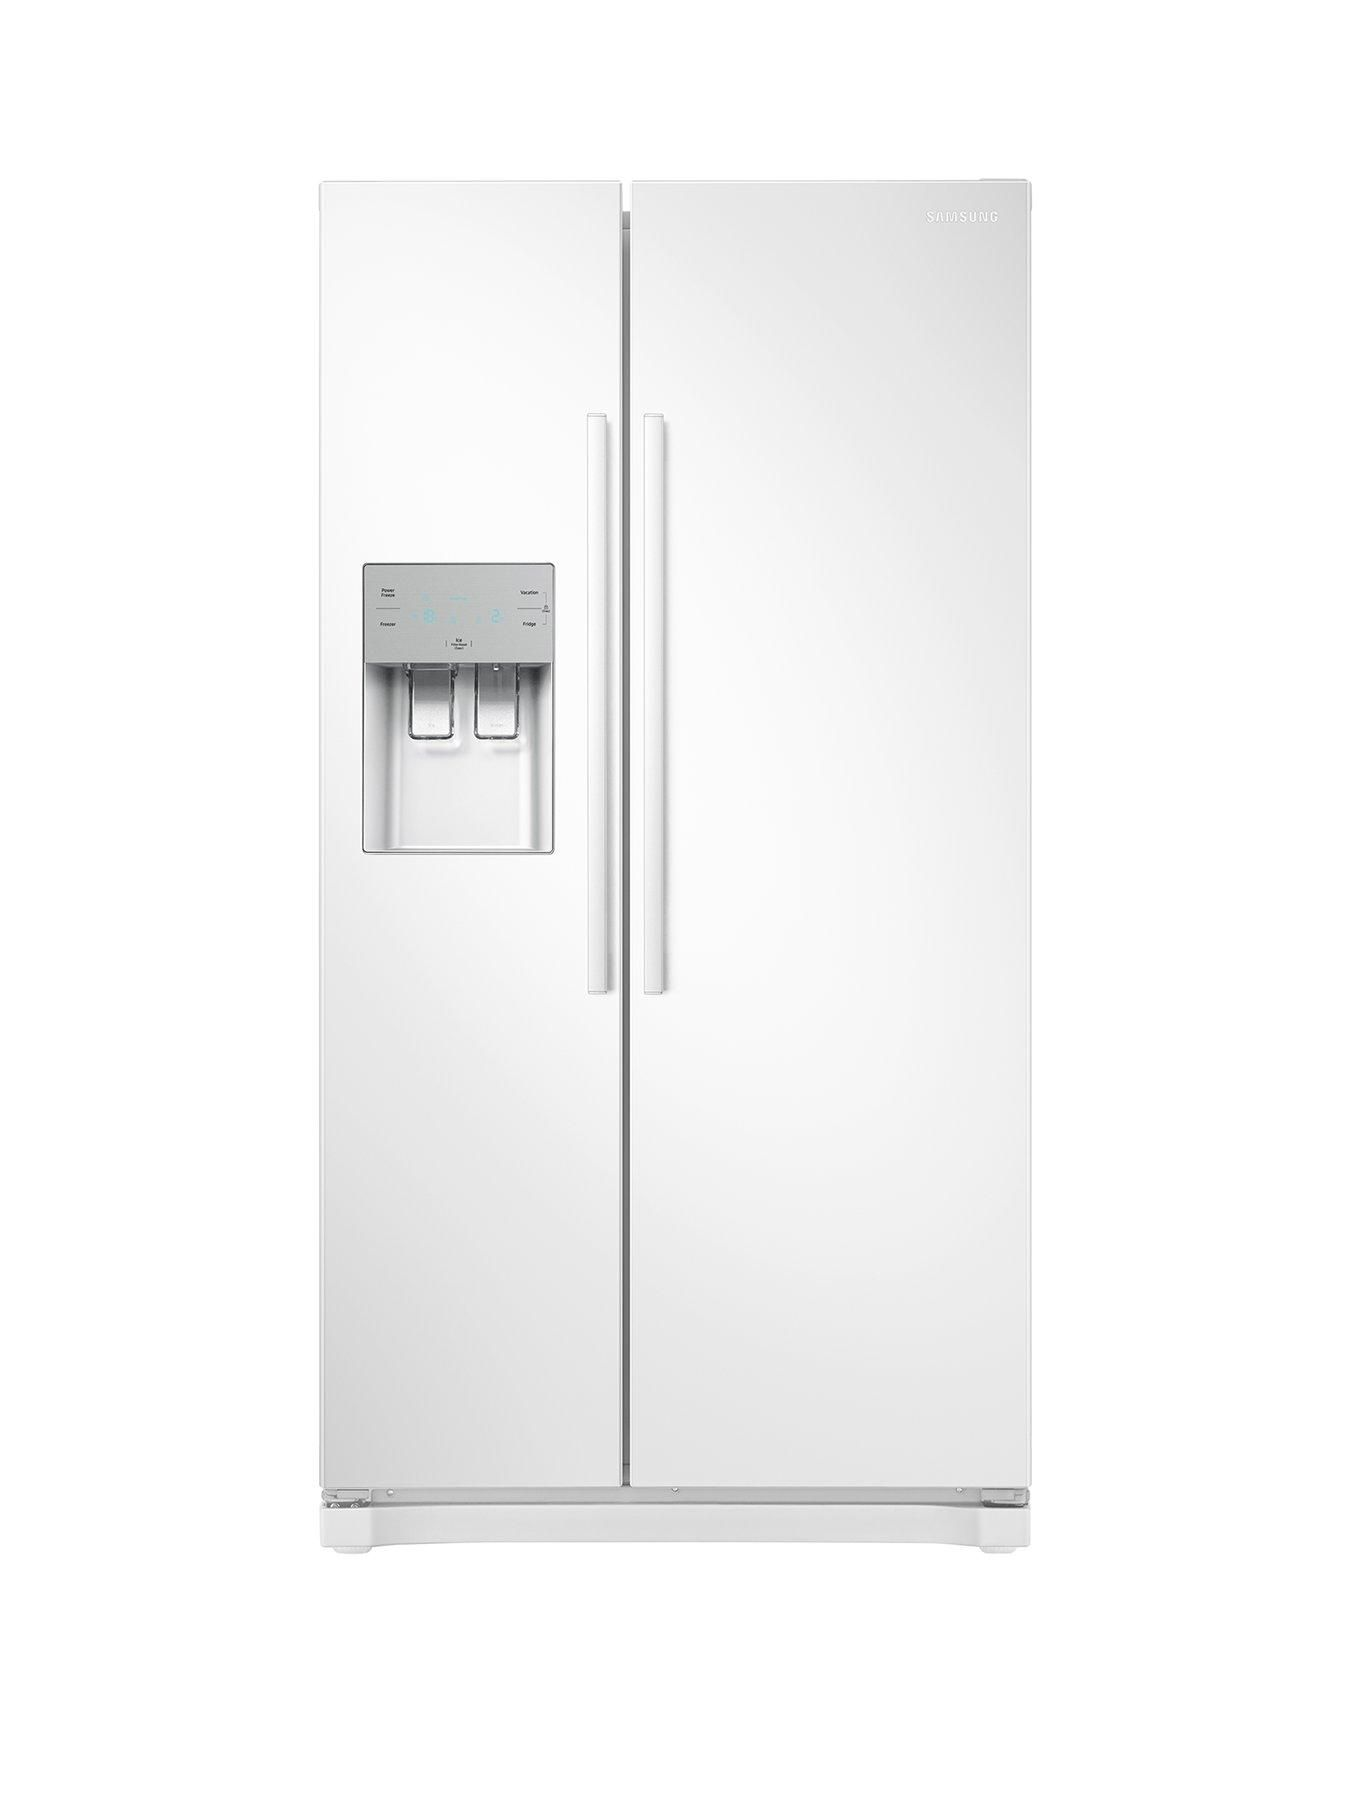 Samsung rsnwweu america style frostfree fridge freezer with